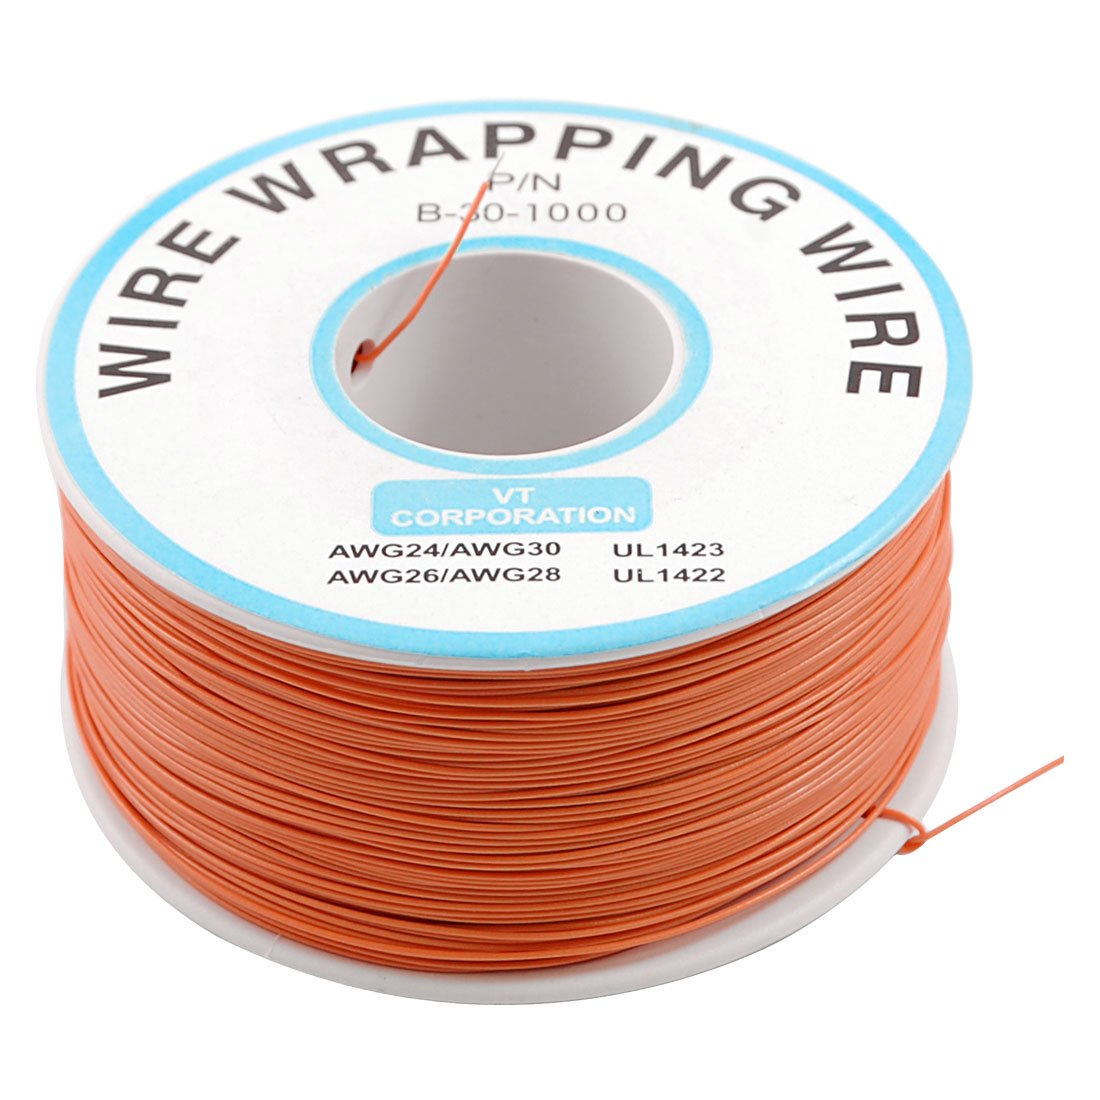 1000 Feet - Yellow ETL Verified GOWOS Cat6 UTP Bulk Ethernet Cable Pullbox 24AWG Stranded Bare Copper Network Cable High Speed LAN Internet Cable for Installations in Homes//Offices